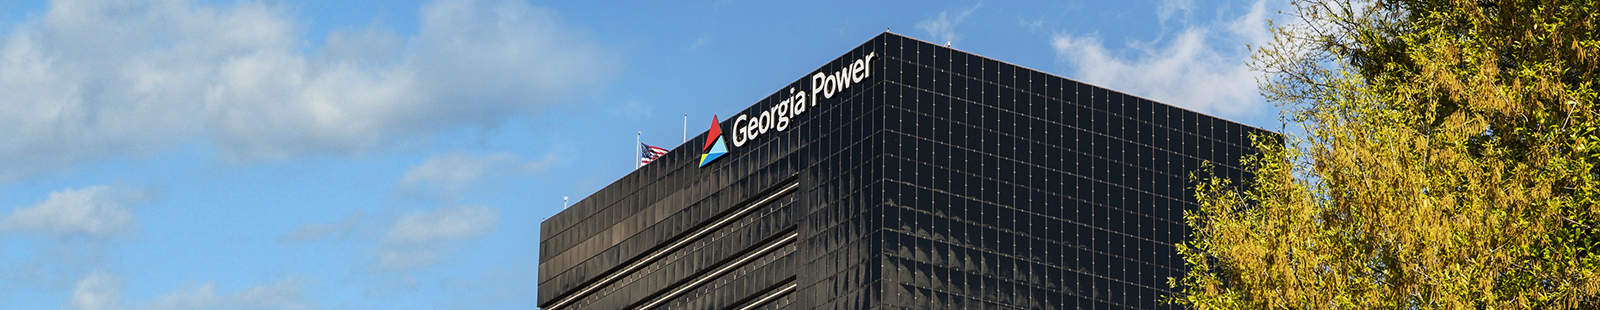 Georgia Power Building